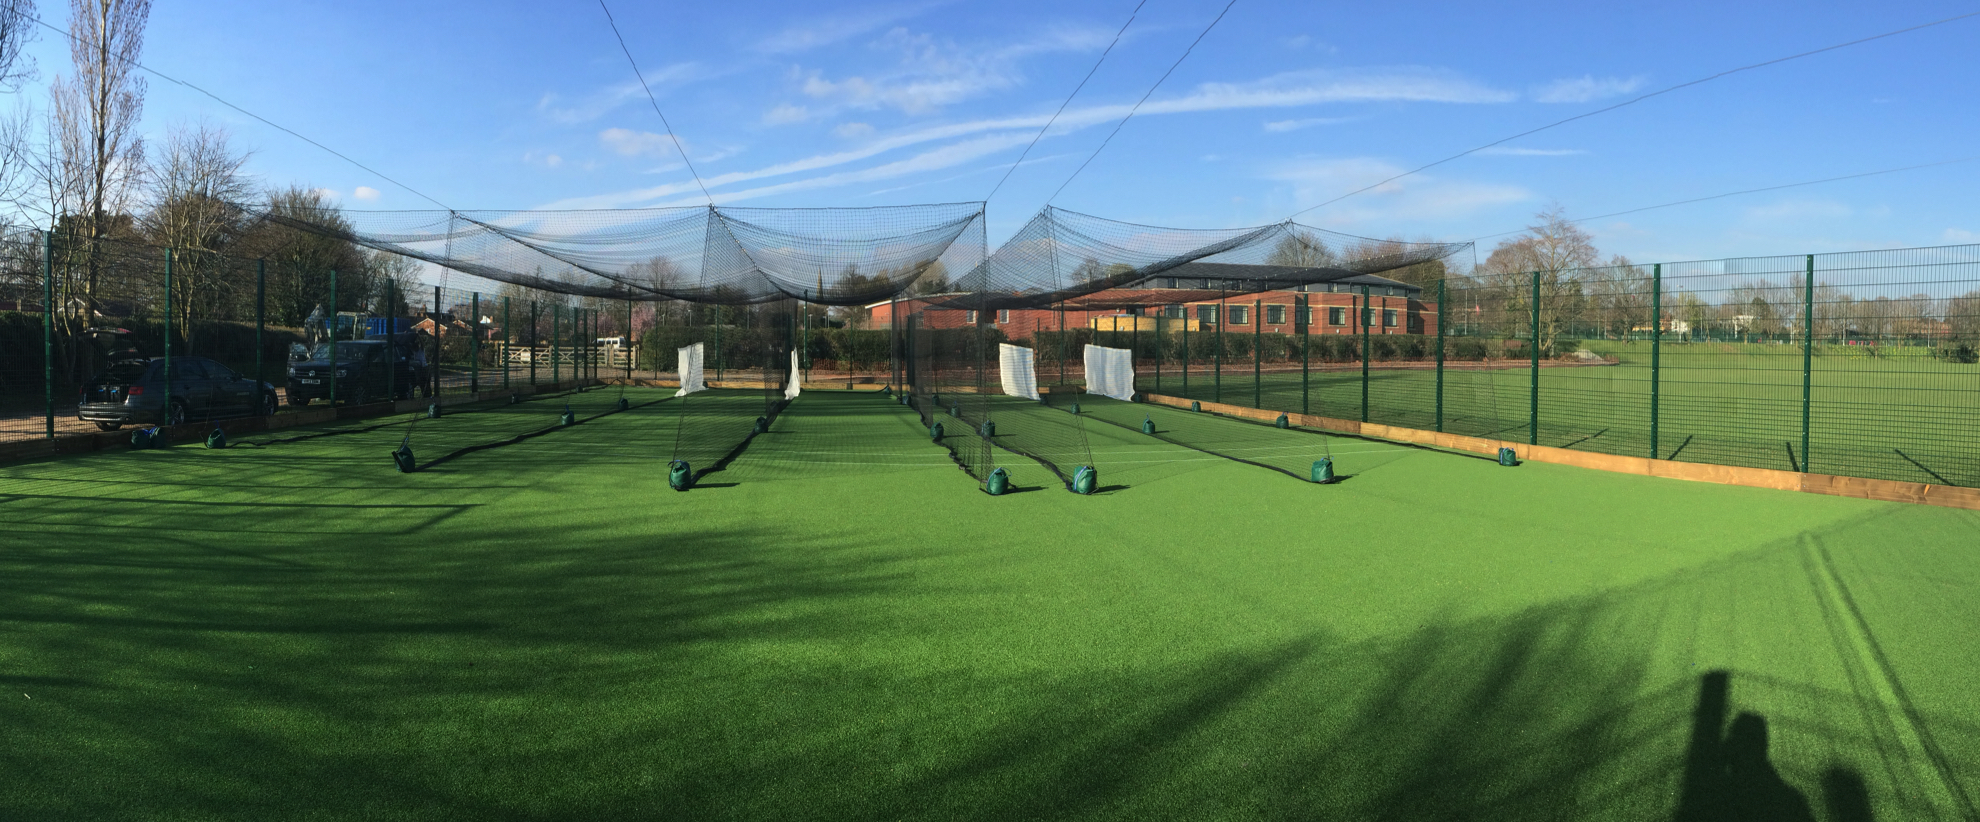 Bromsgrove School Cricket MUGA Total-Play